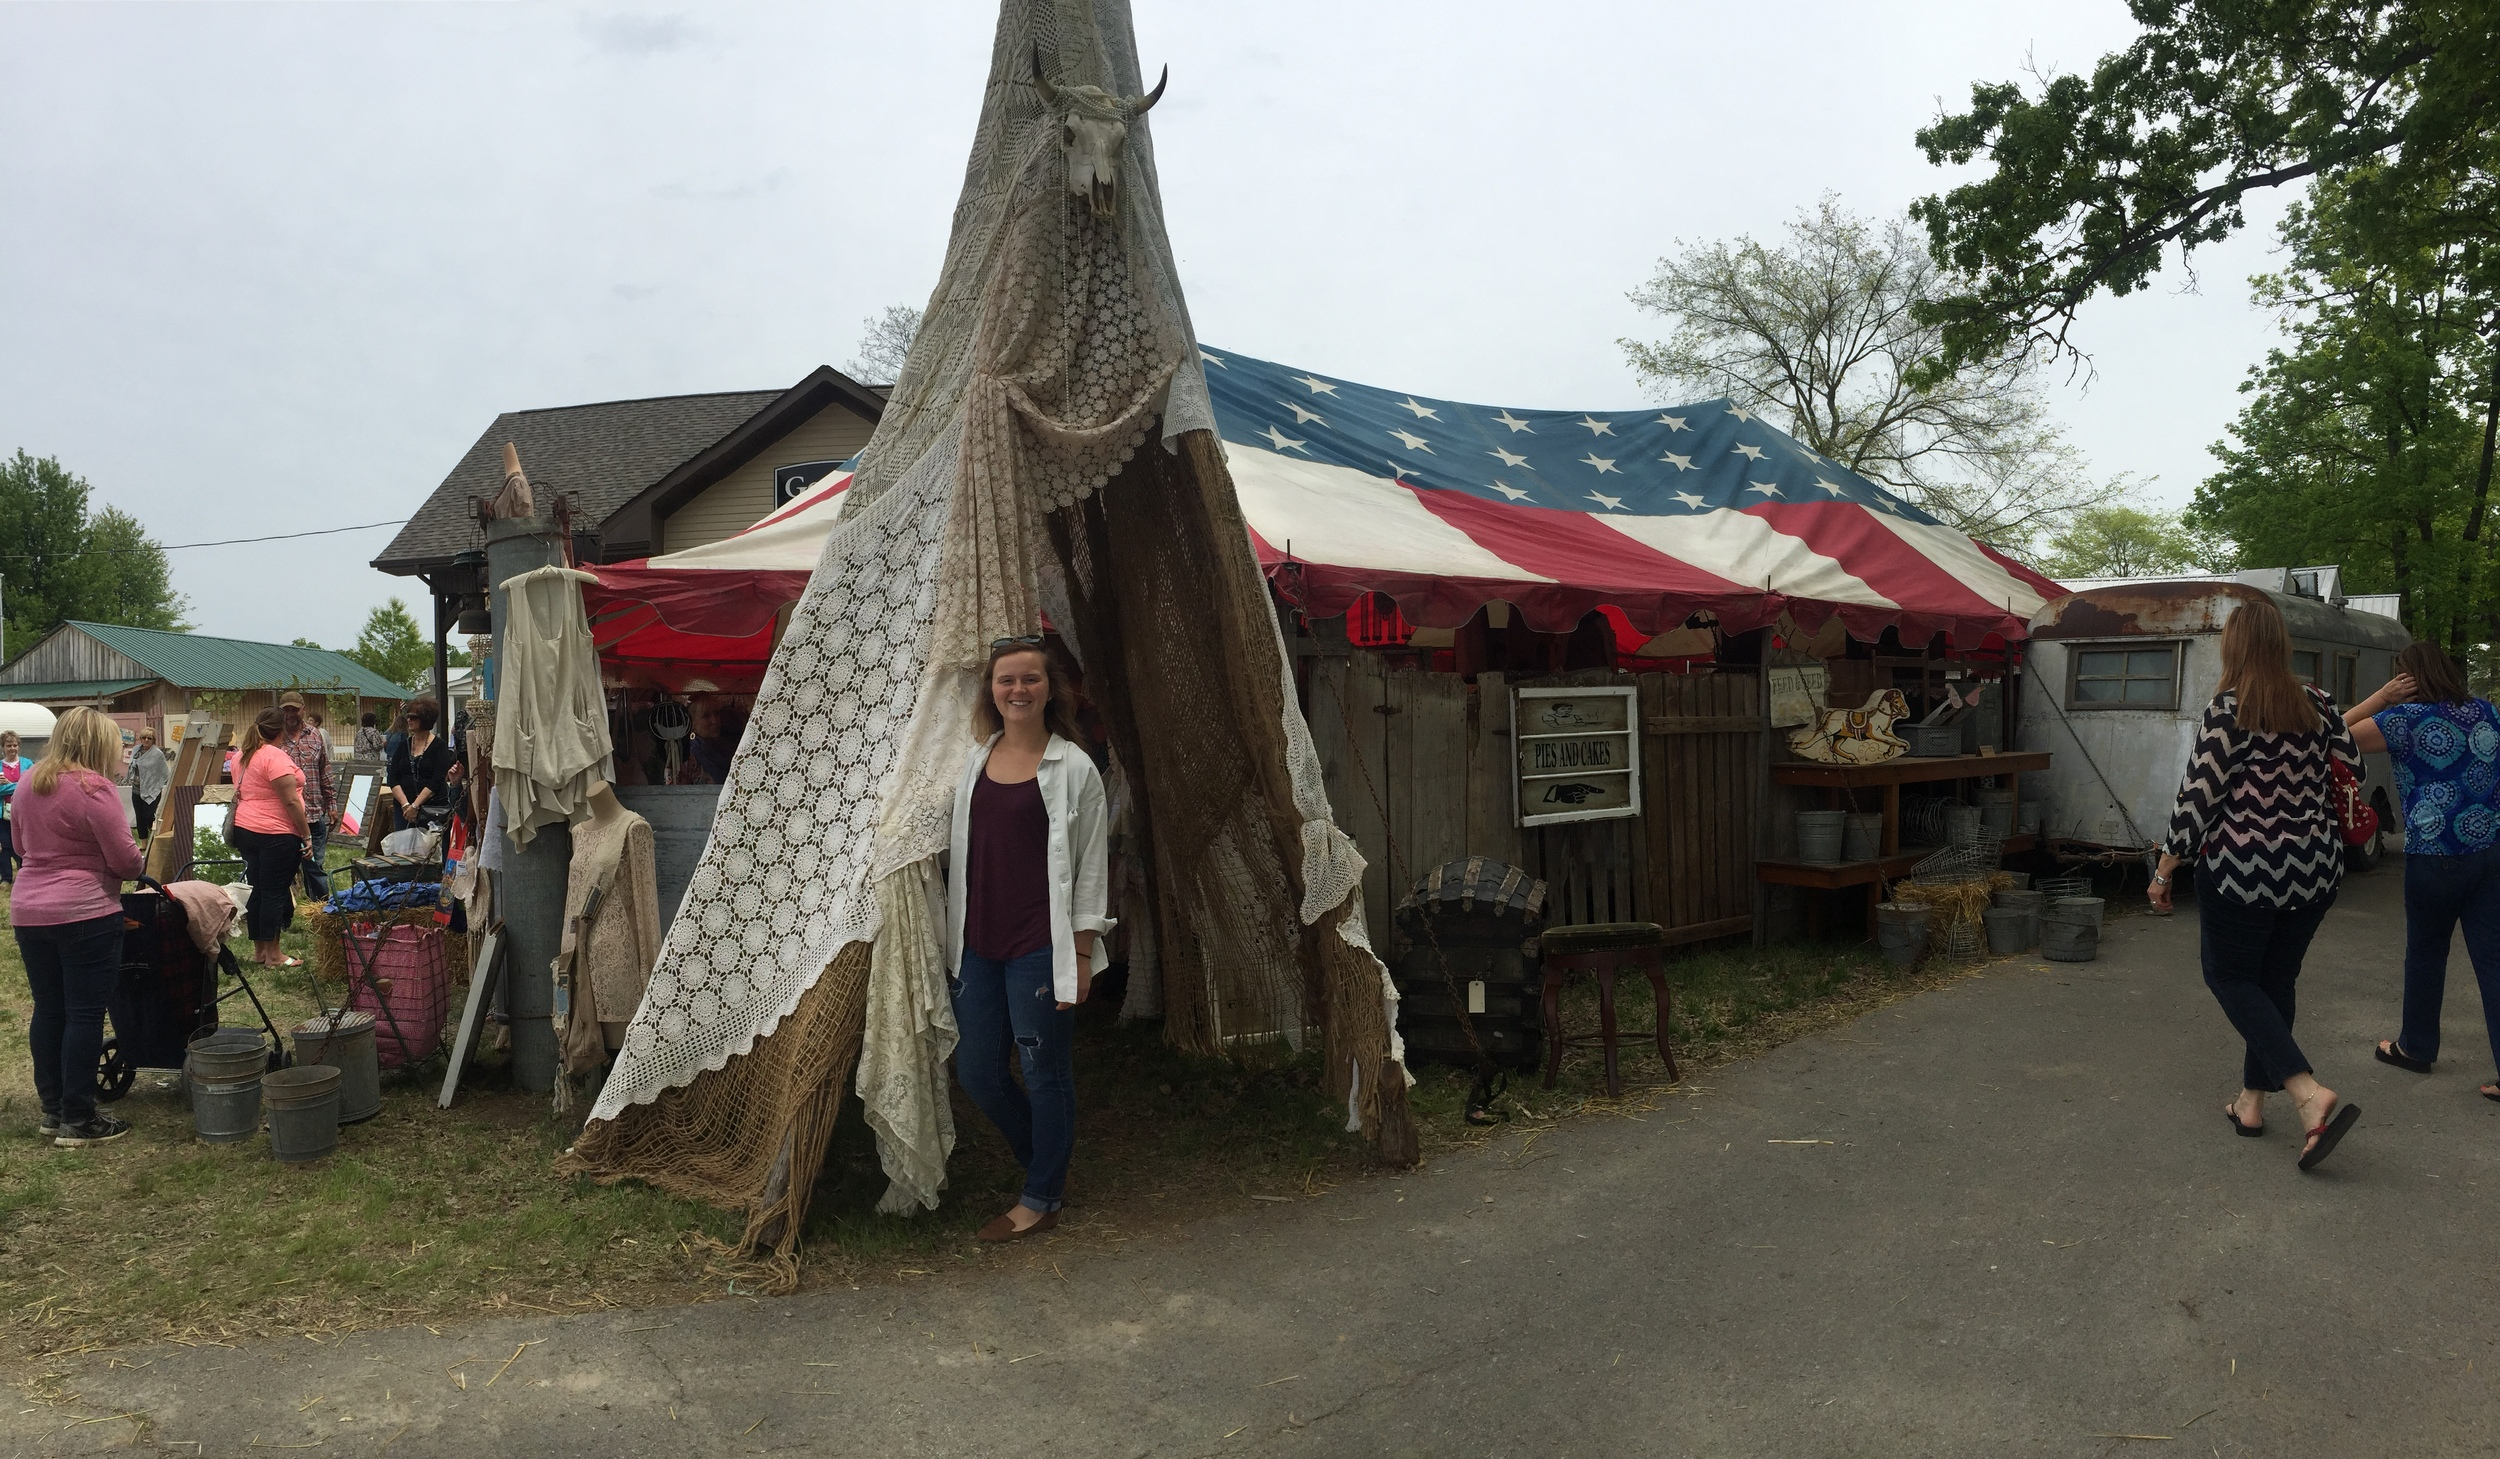 This booth, by  Spellbound Collections  (from Palmer, tX) was HUGE! I loved the teepee entrance, and the Americana vibe they provided. Inside the tent was a vast array of t-shirts, frilly clothing, home goods, cowgirl boots, and jewelry.  Check them out here.